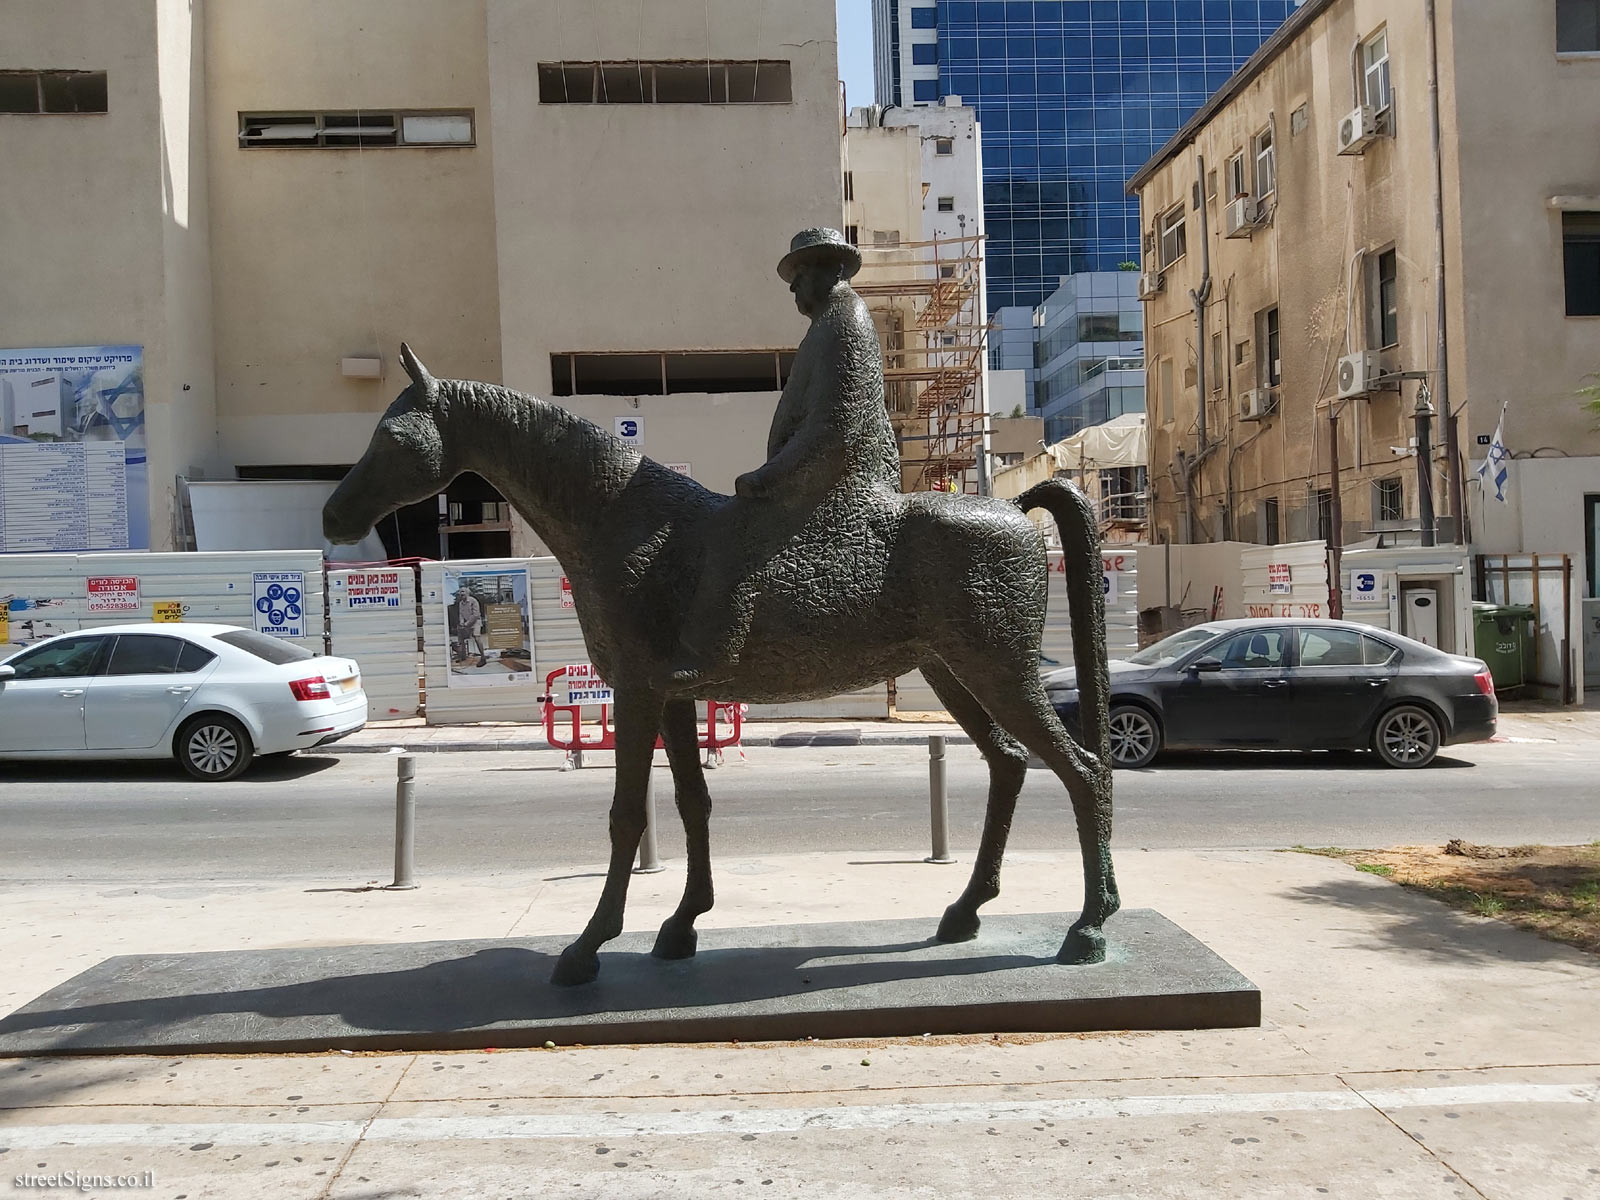 Independence Trail - Statue of Meir Dizengoff - Rothschild Blvd 16, Tel Aviv-Yafo, Israel